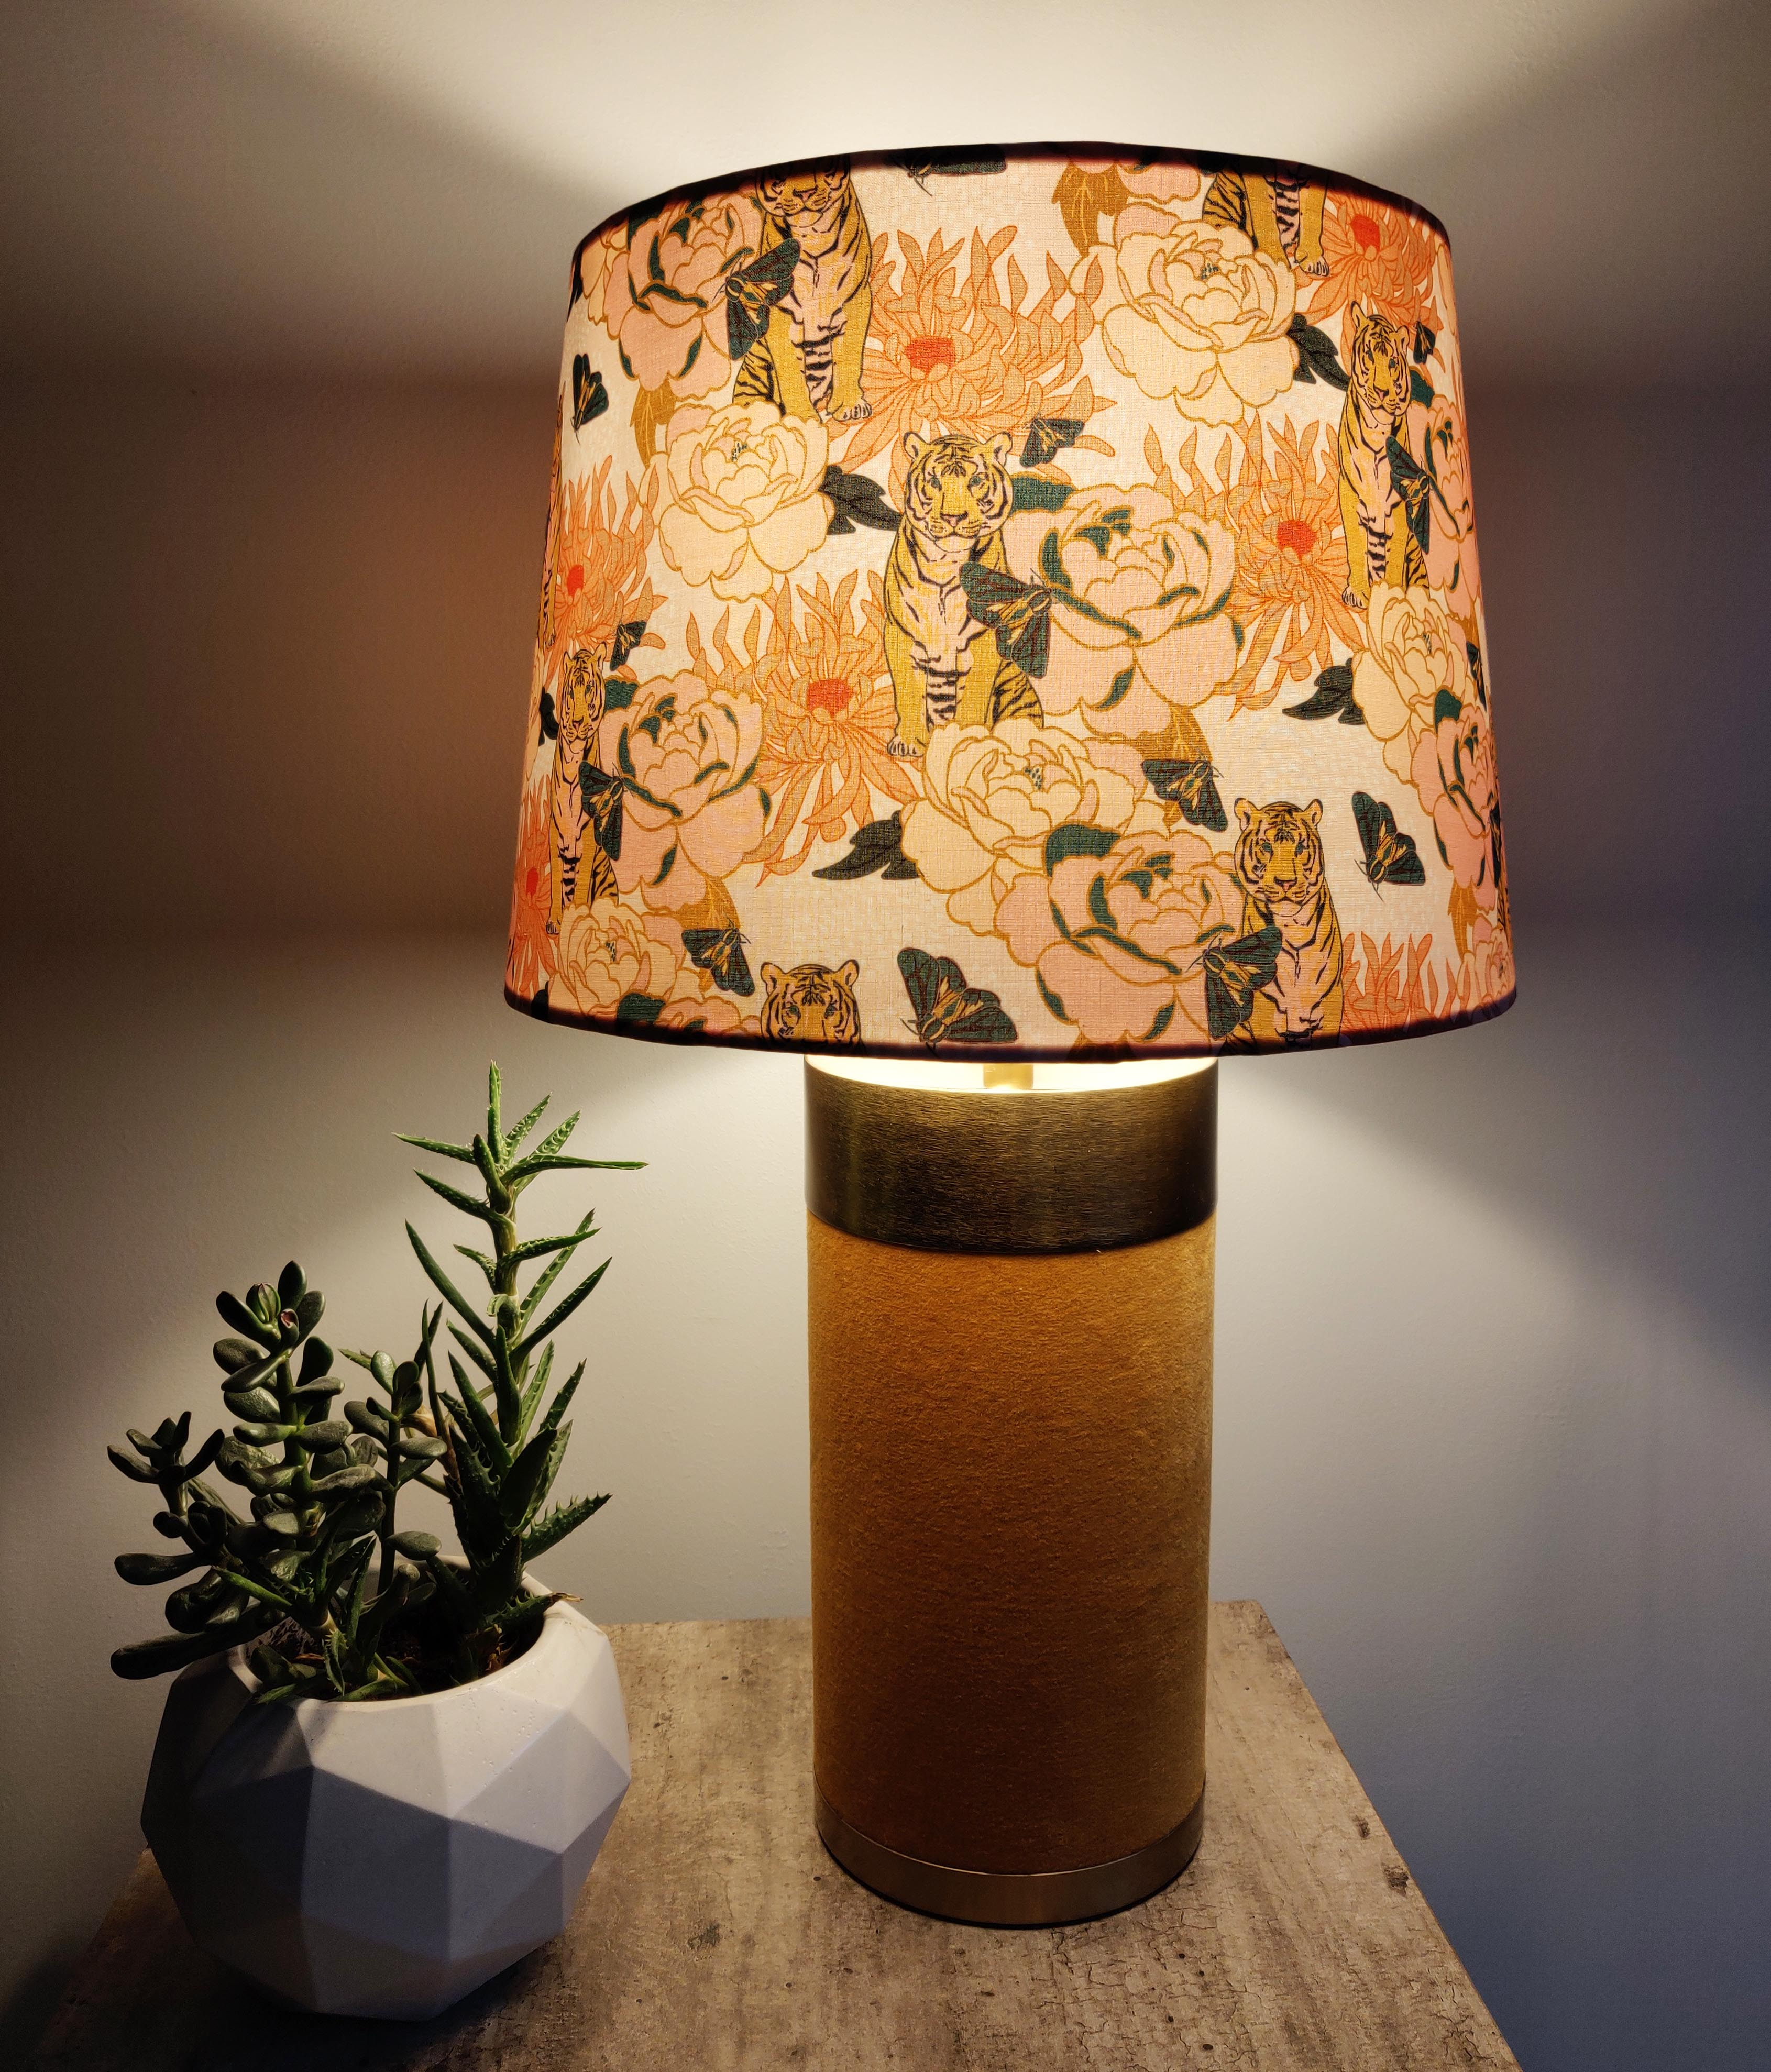 Tiger Lily Lampshade in Tapered Design